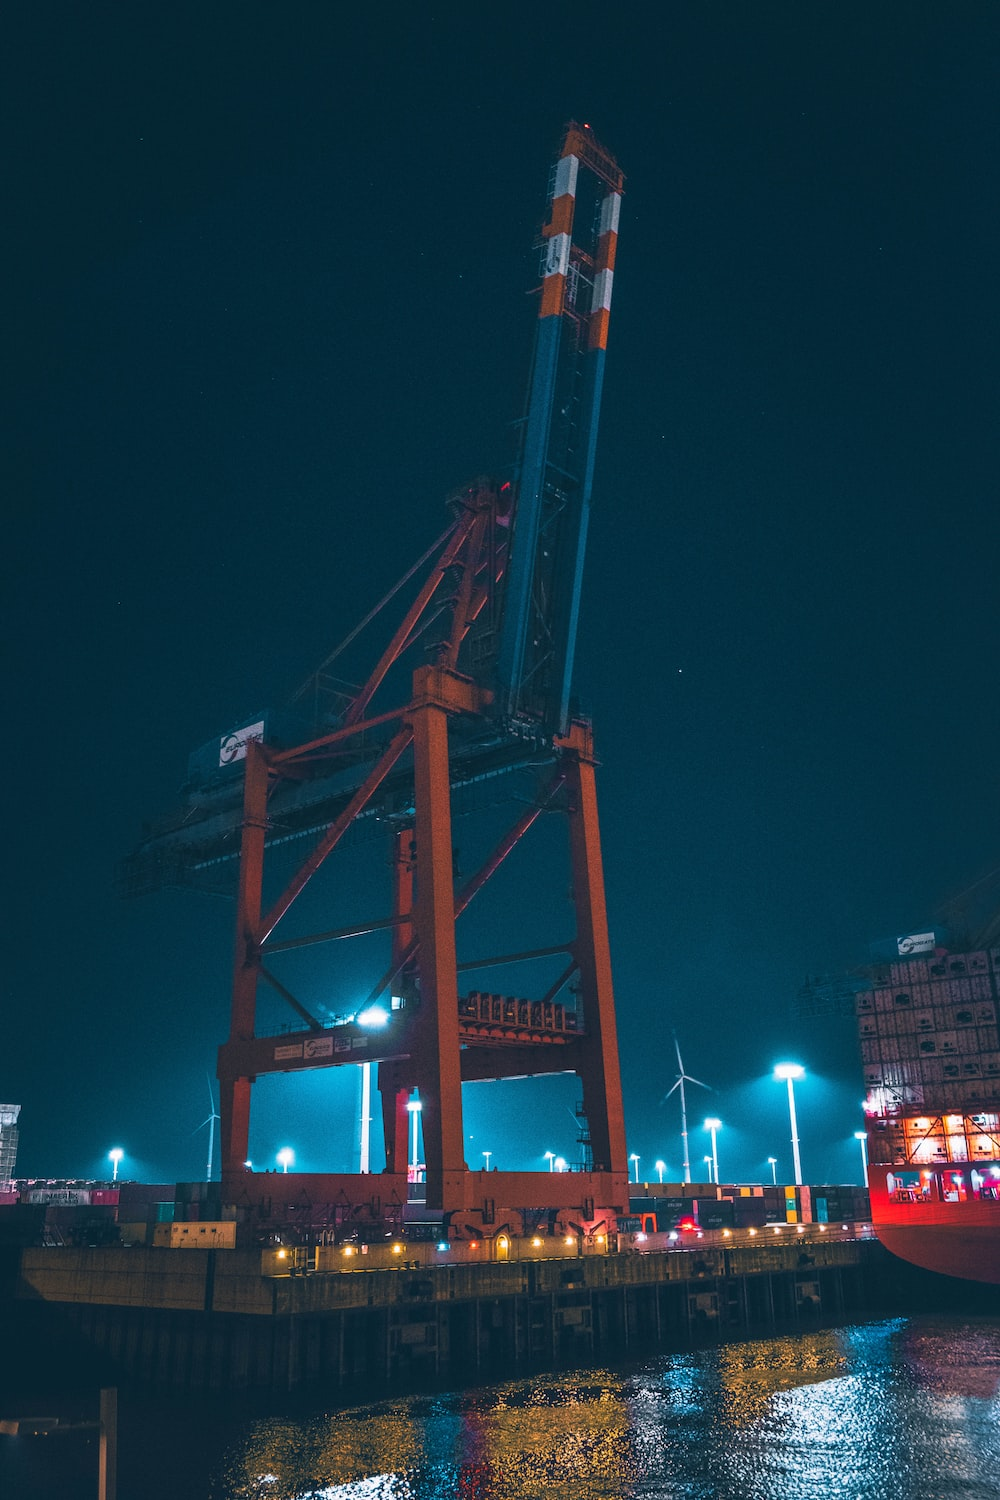 orange and blue tower crane during night time